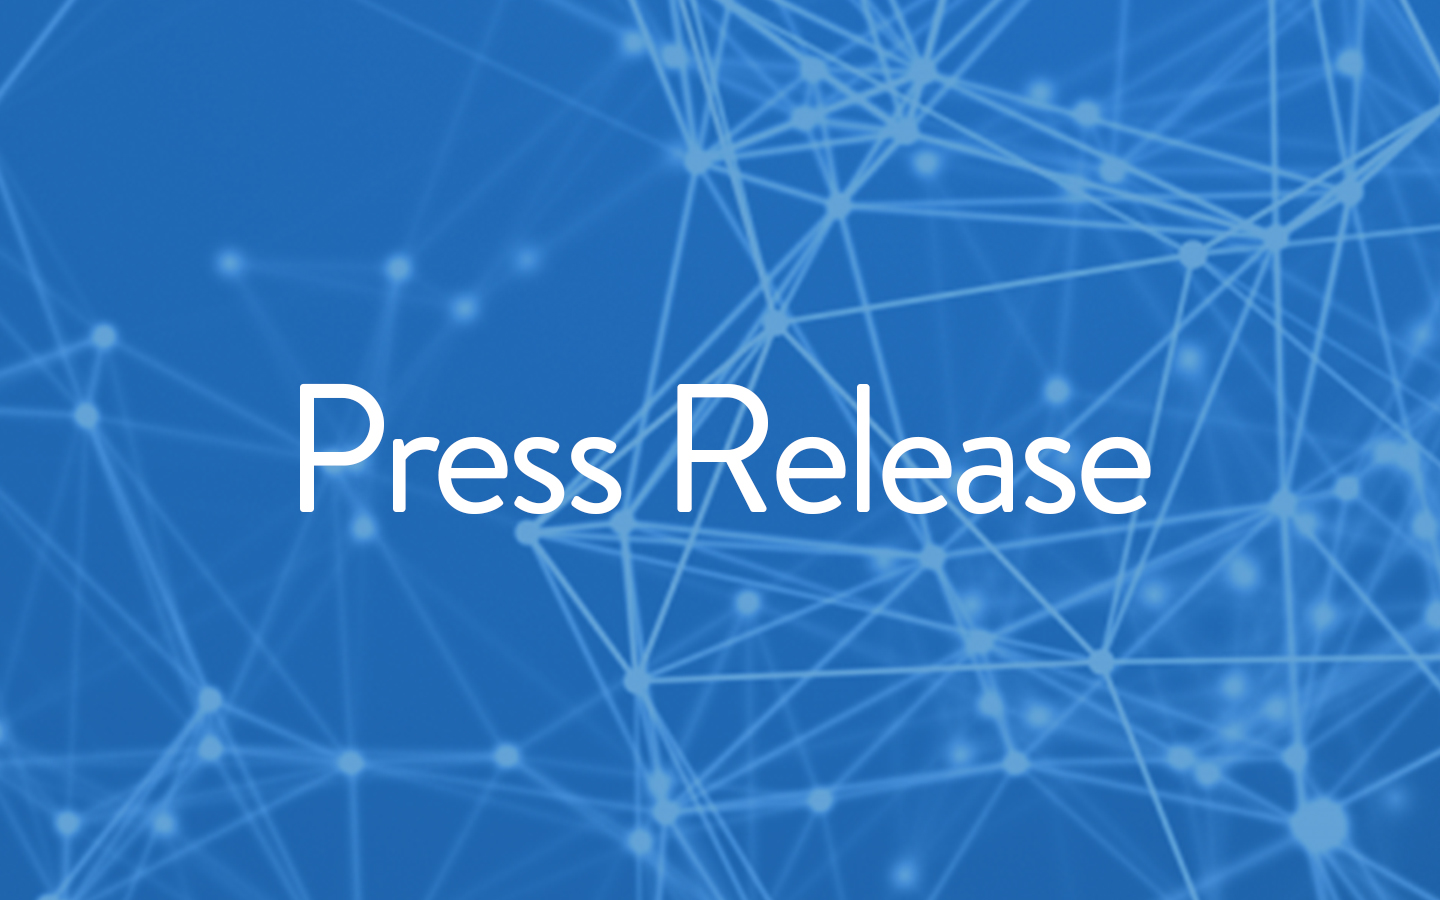 Press Release: Vancity Joins Working Group Piloting Innovative Credit Models